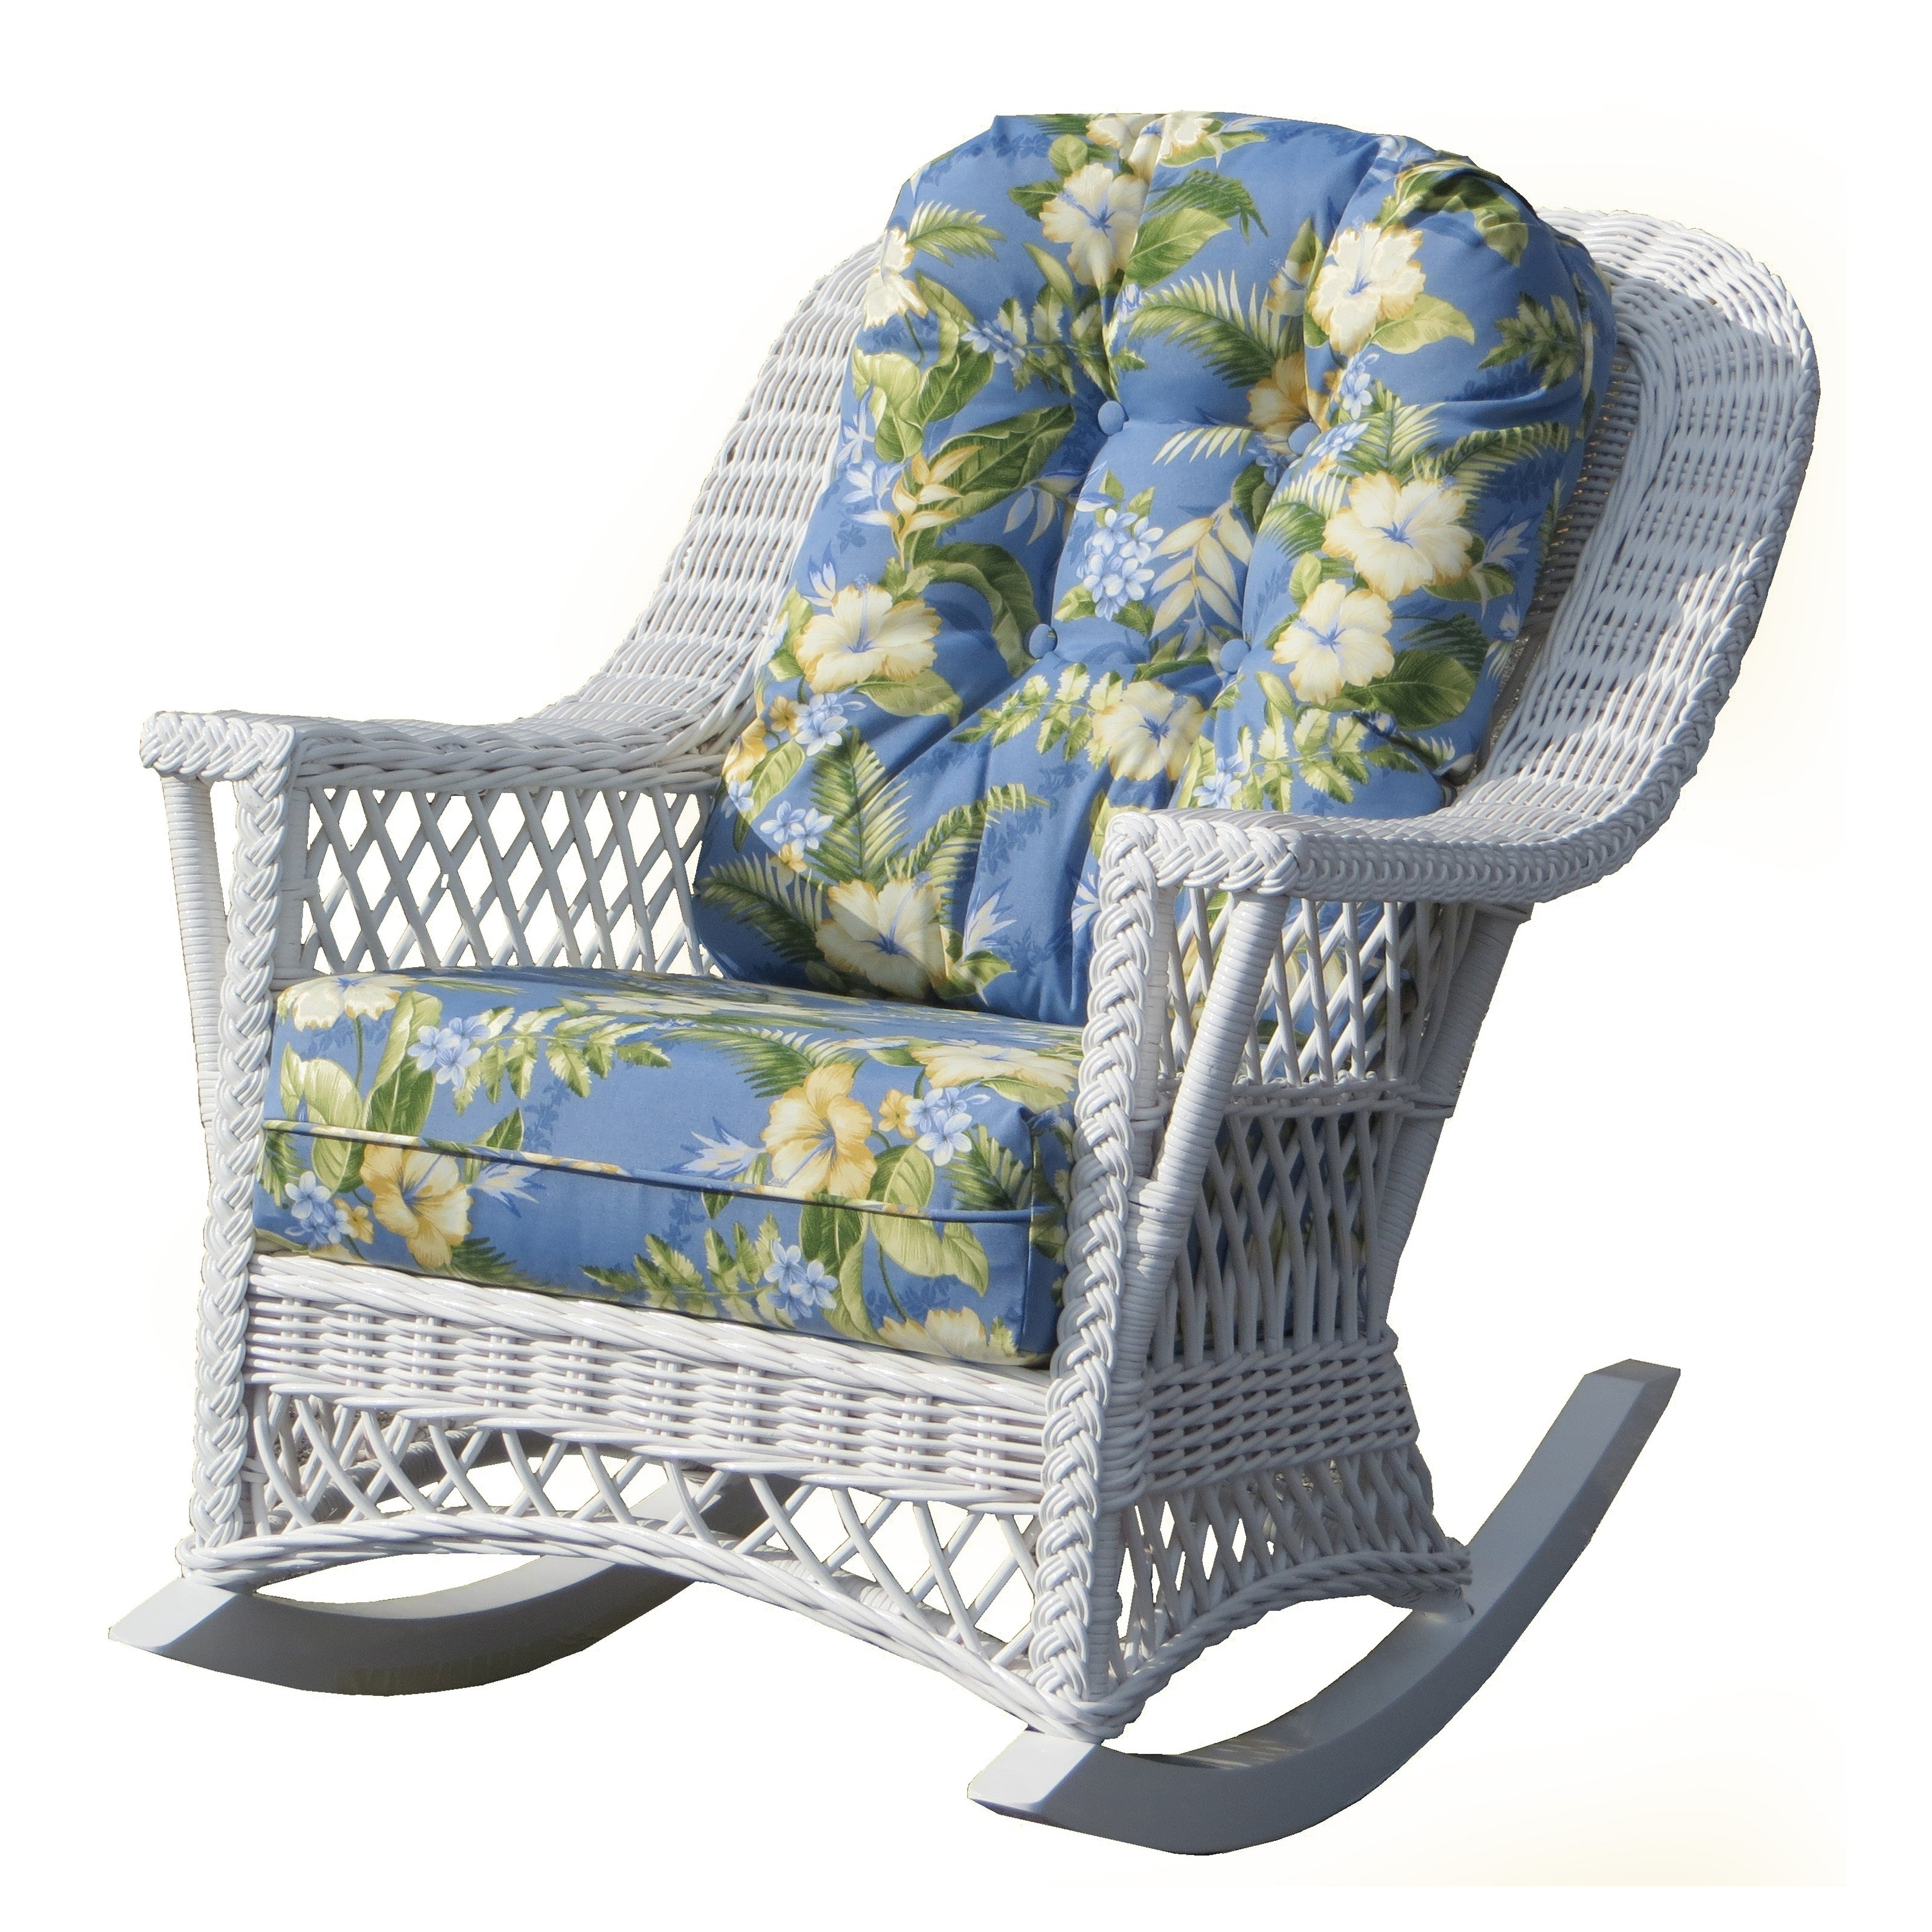 Yesteryear Wicker Childs Wicker Rocking Chair With Cushion | Hayneedle With Wicker Rocking Chairs With Cushions (#15 of 15)